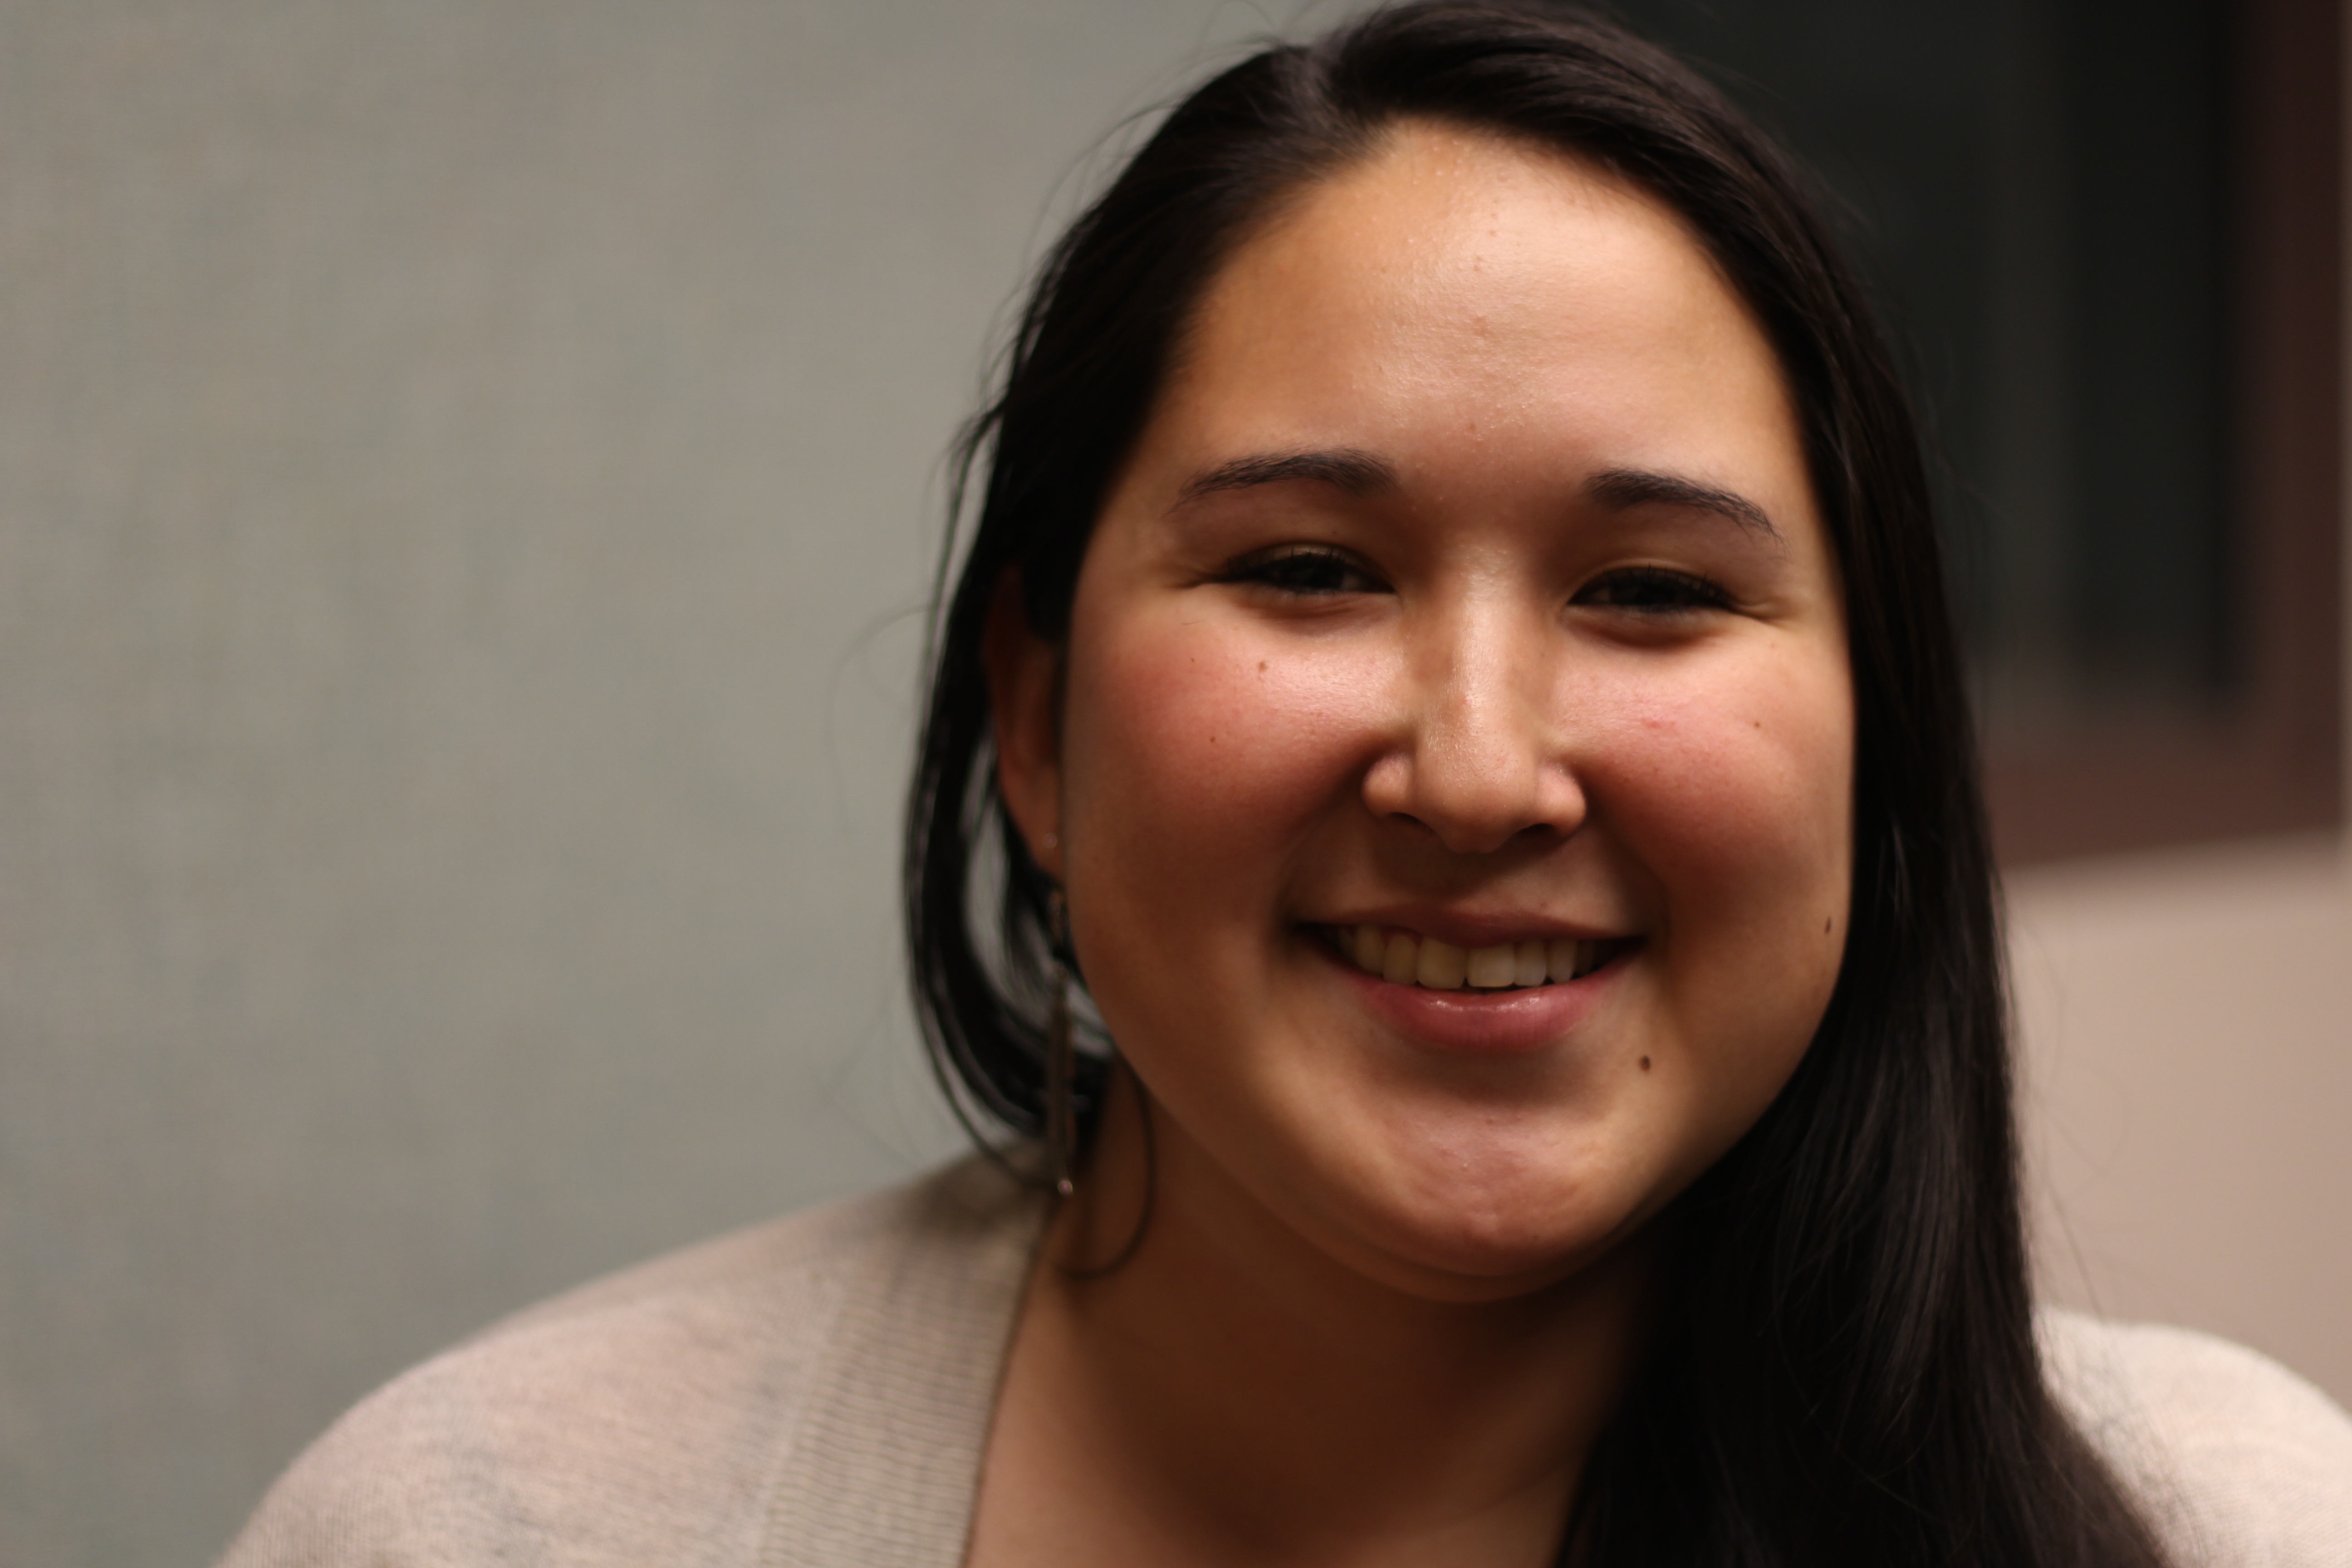 Jacqui Lambert of Kotzebue. Lambert is currently a student at UAA. (Photo by Wesley Early, Alaska Public Media - Anchorage)